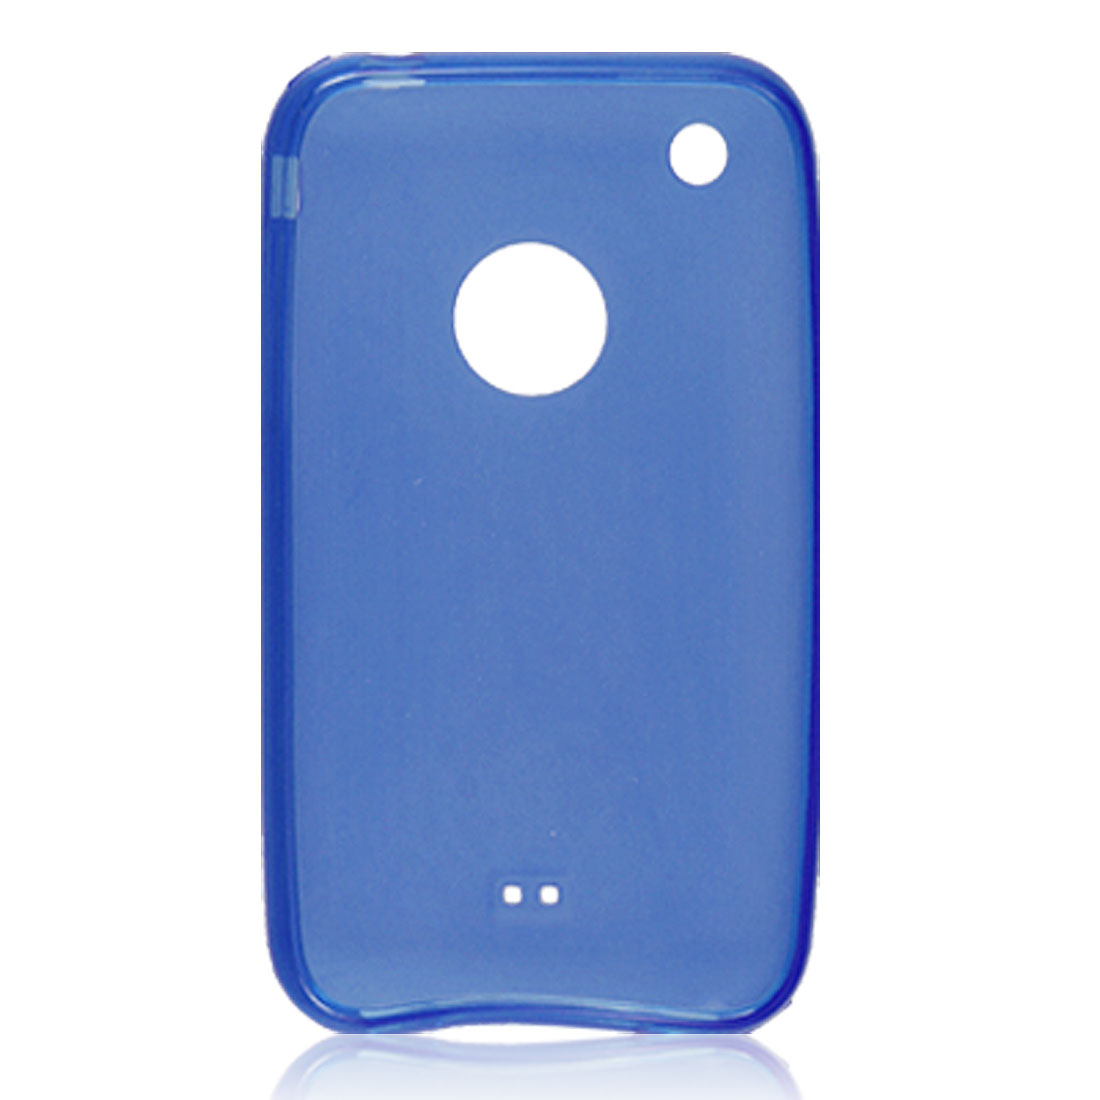 Smooth Blue Soft Case Plastic Guard Cover for Apple iPhone 3G